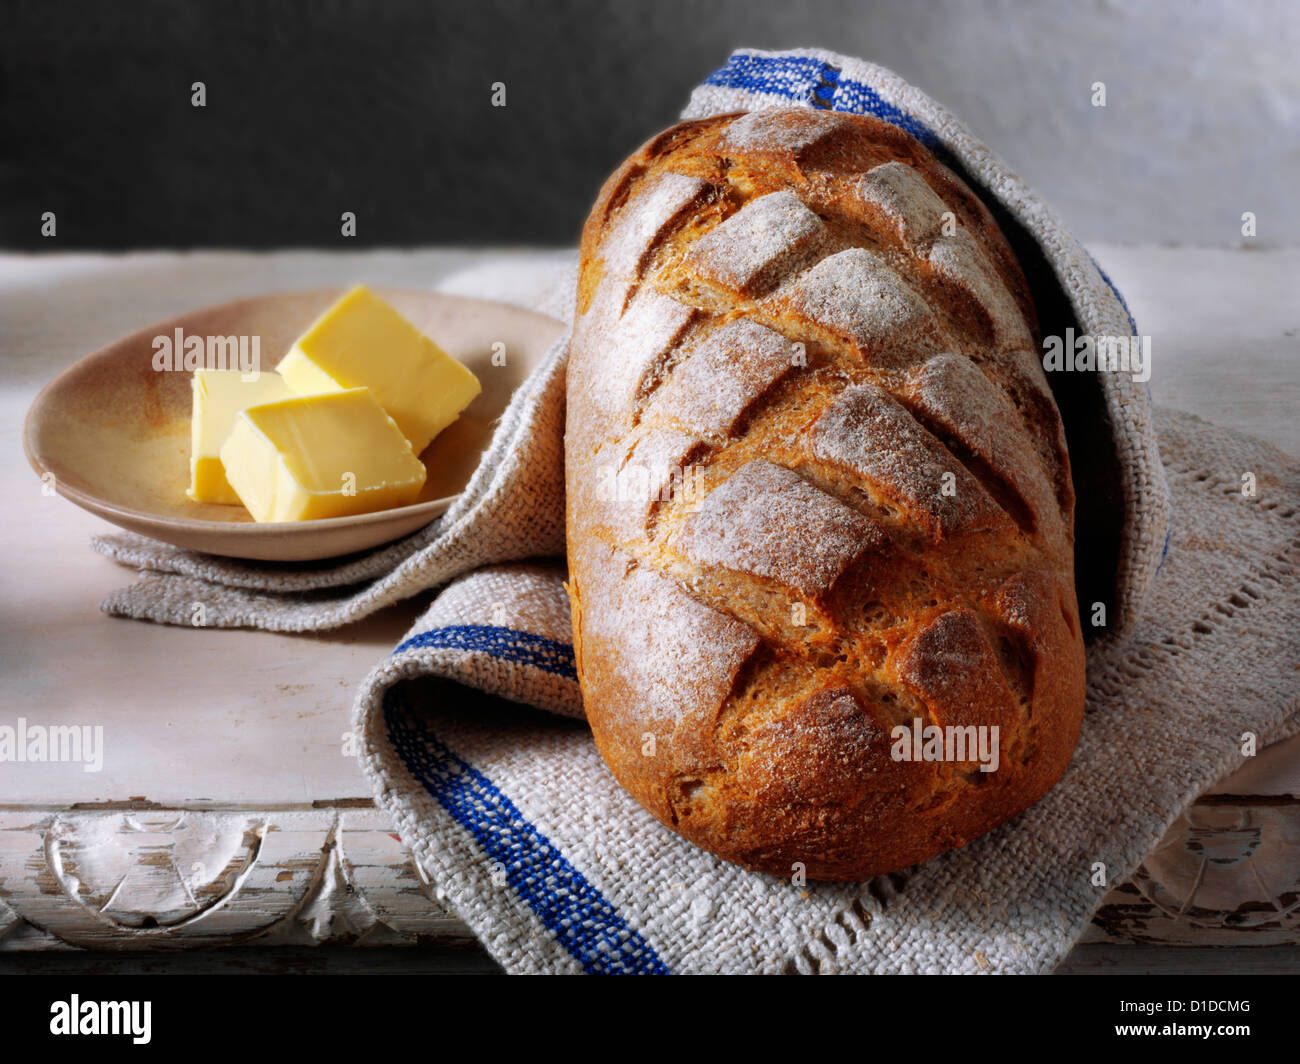 Artisan organic sourdough bread loaf - Stock Image